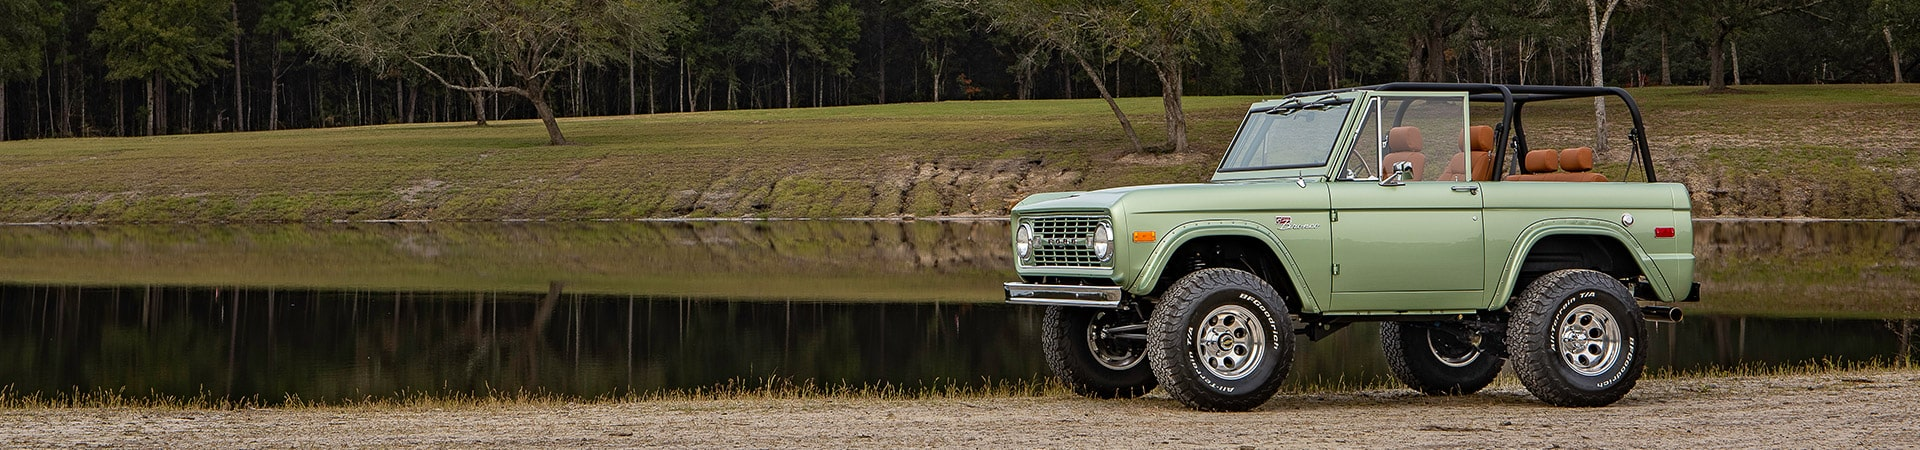 Early Ford Bronco Lake Build